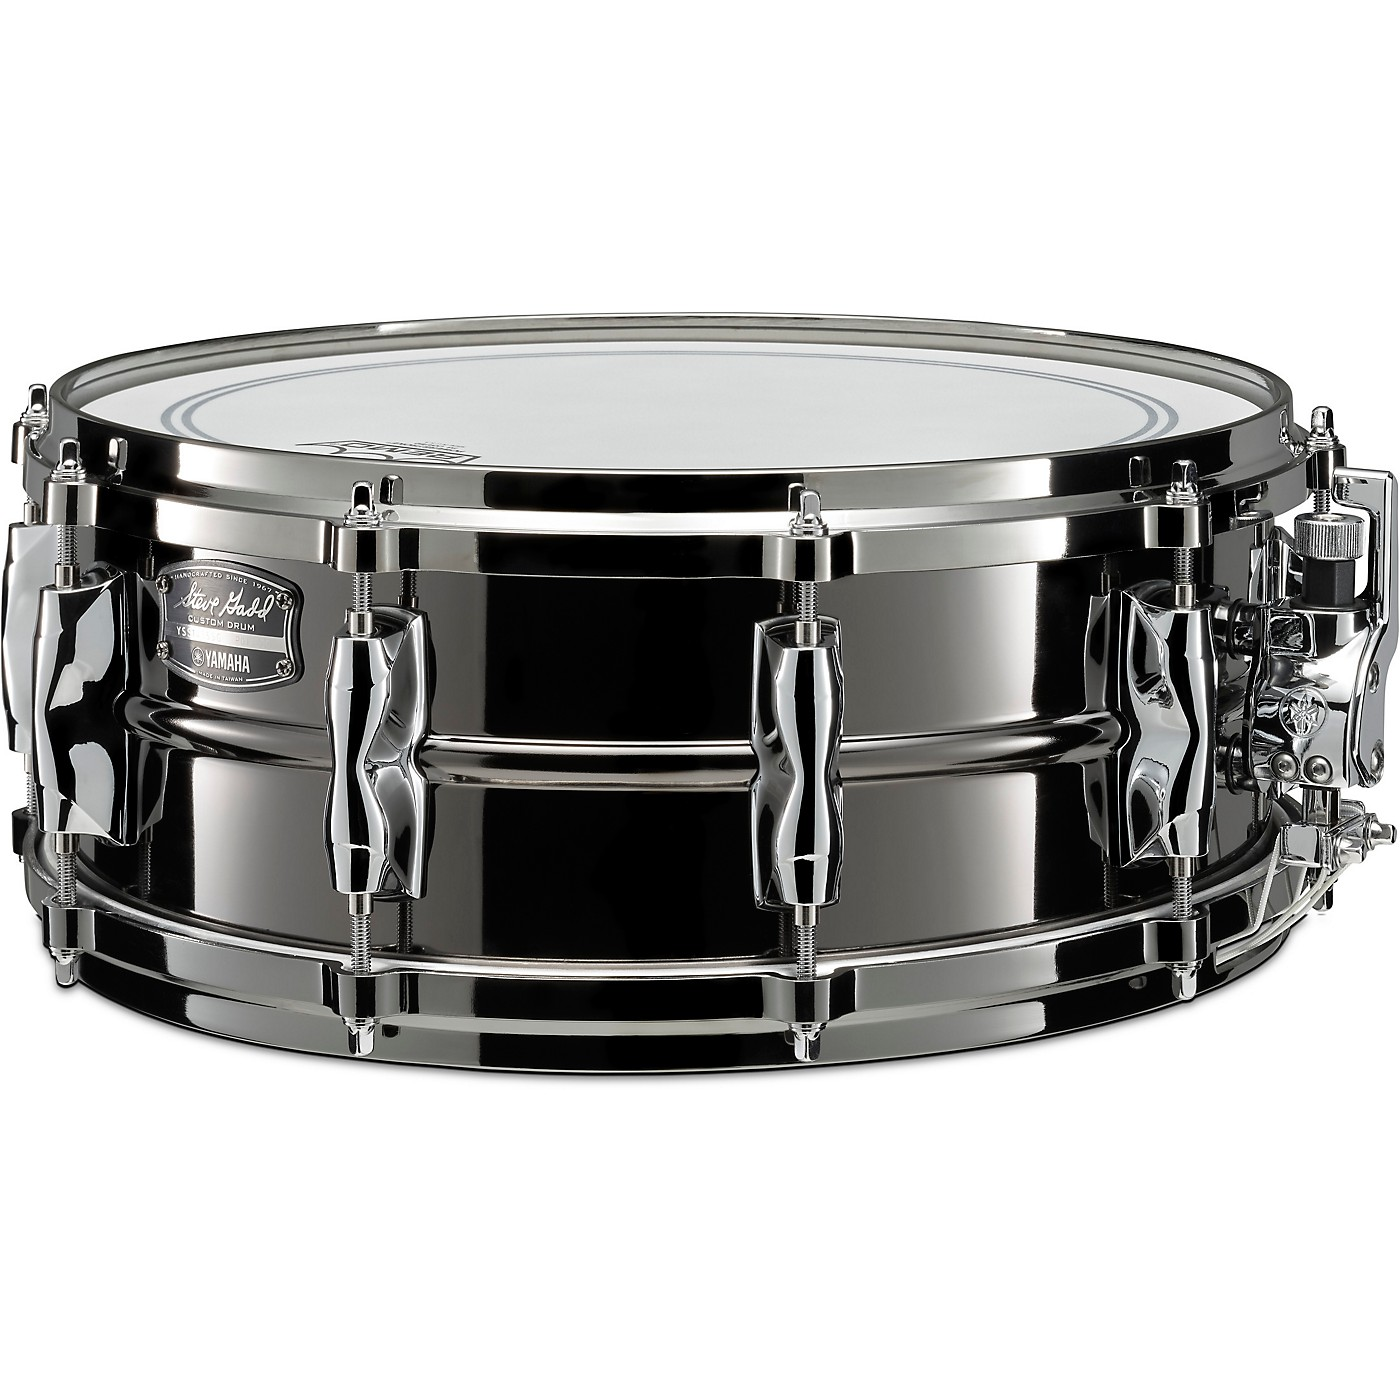 Yamaha Steve Gadd Limited Edition Steel Snare Drum thumbnail